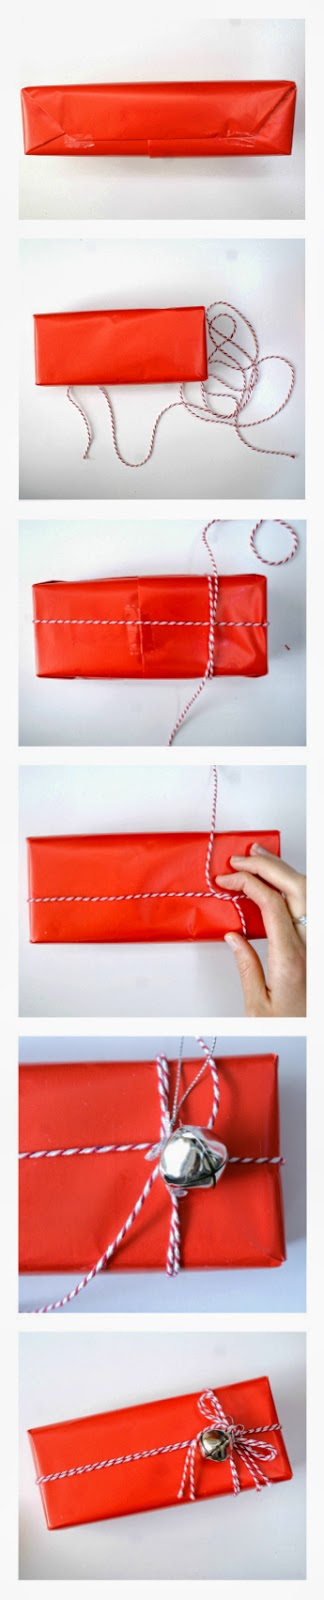 Beautiful Gift Wrapping Ideas on a Budget - Adding Silver Bells for a Festive Touch